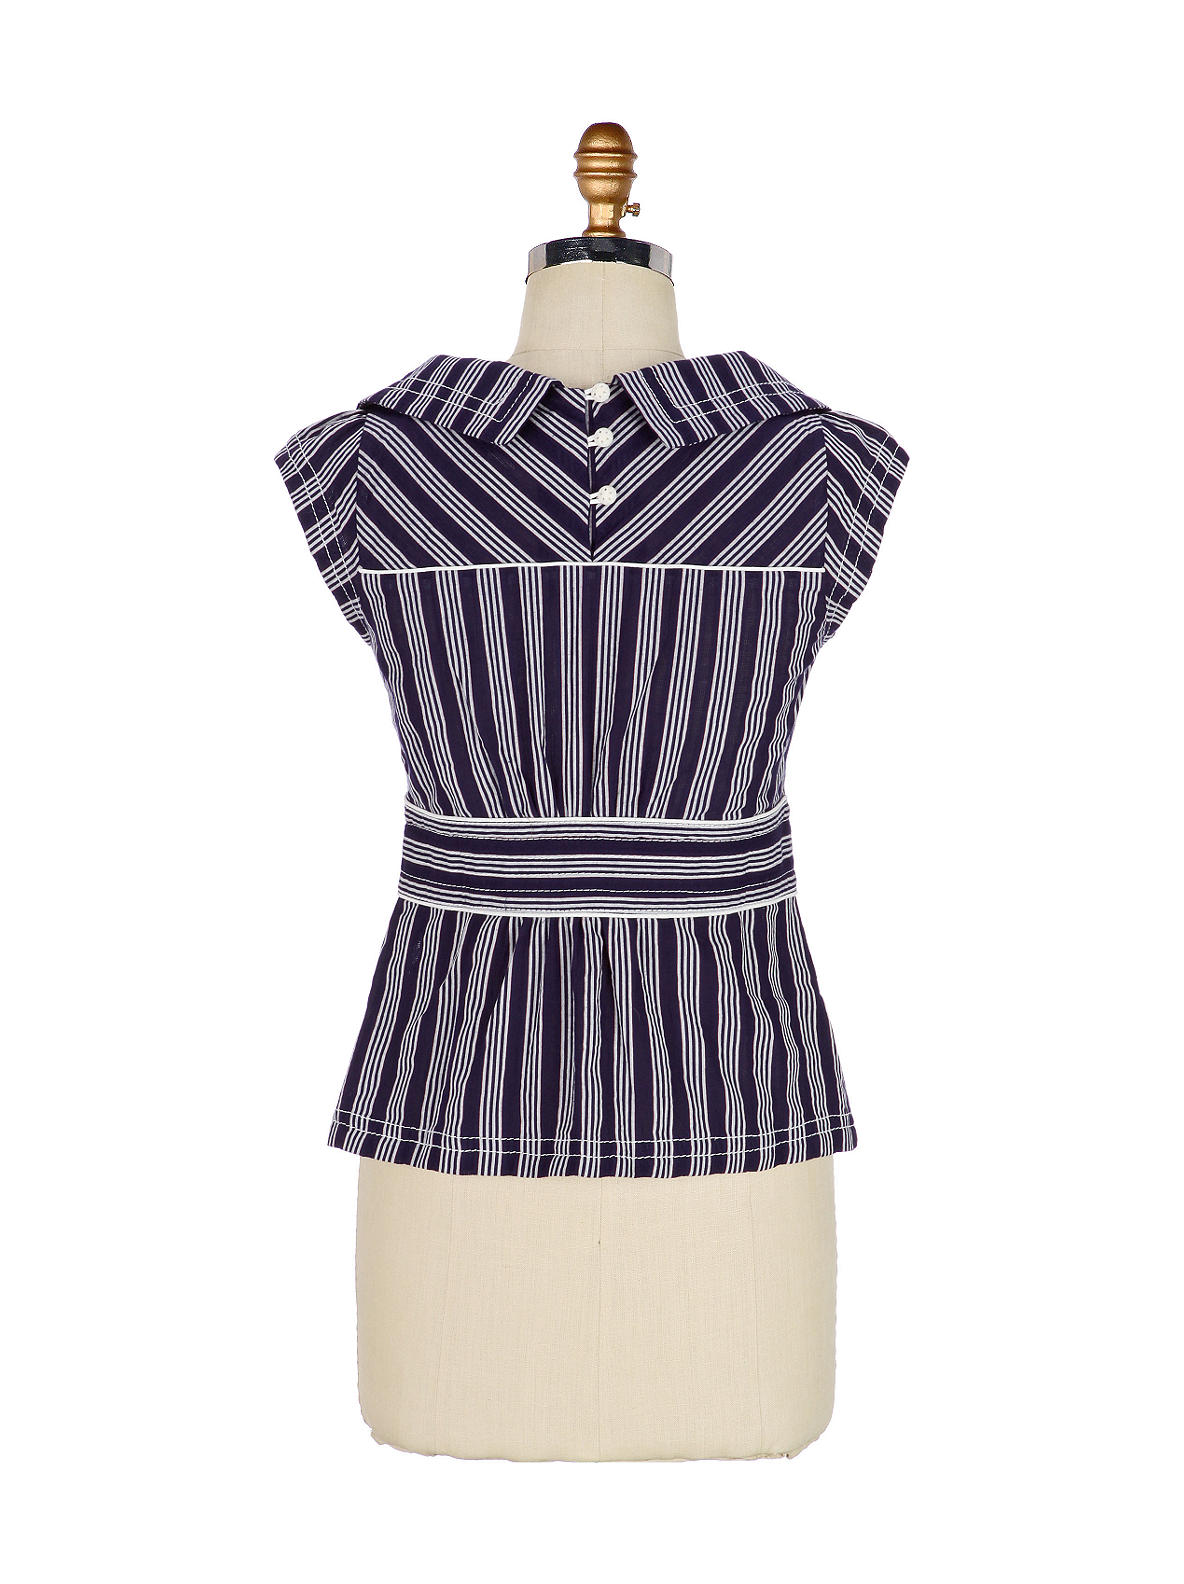 Meridian Blouse - Anthropologie.com :  striped back buttons sailor bodice